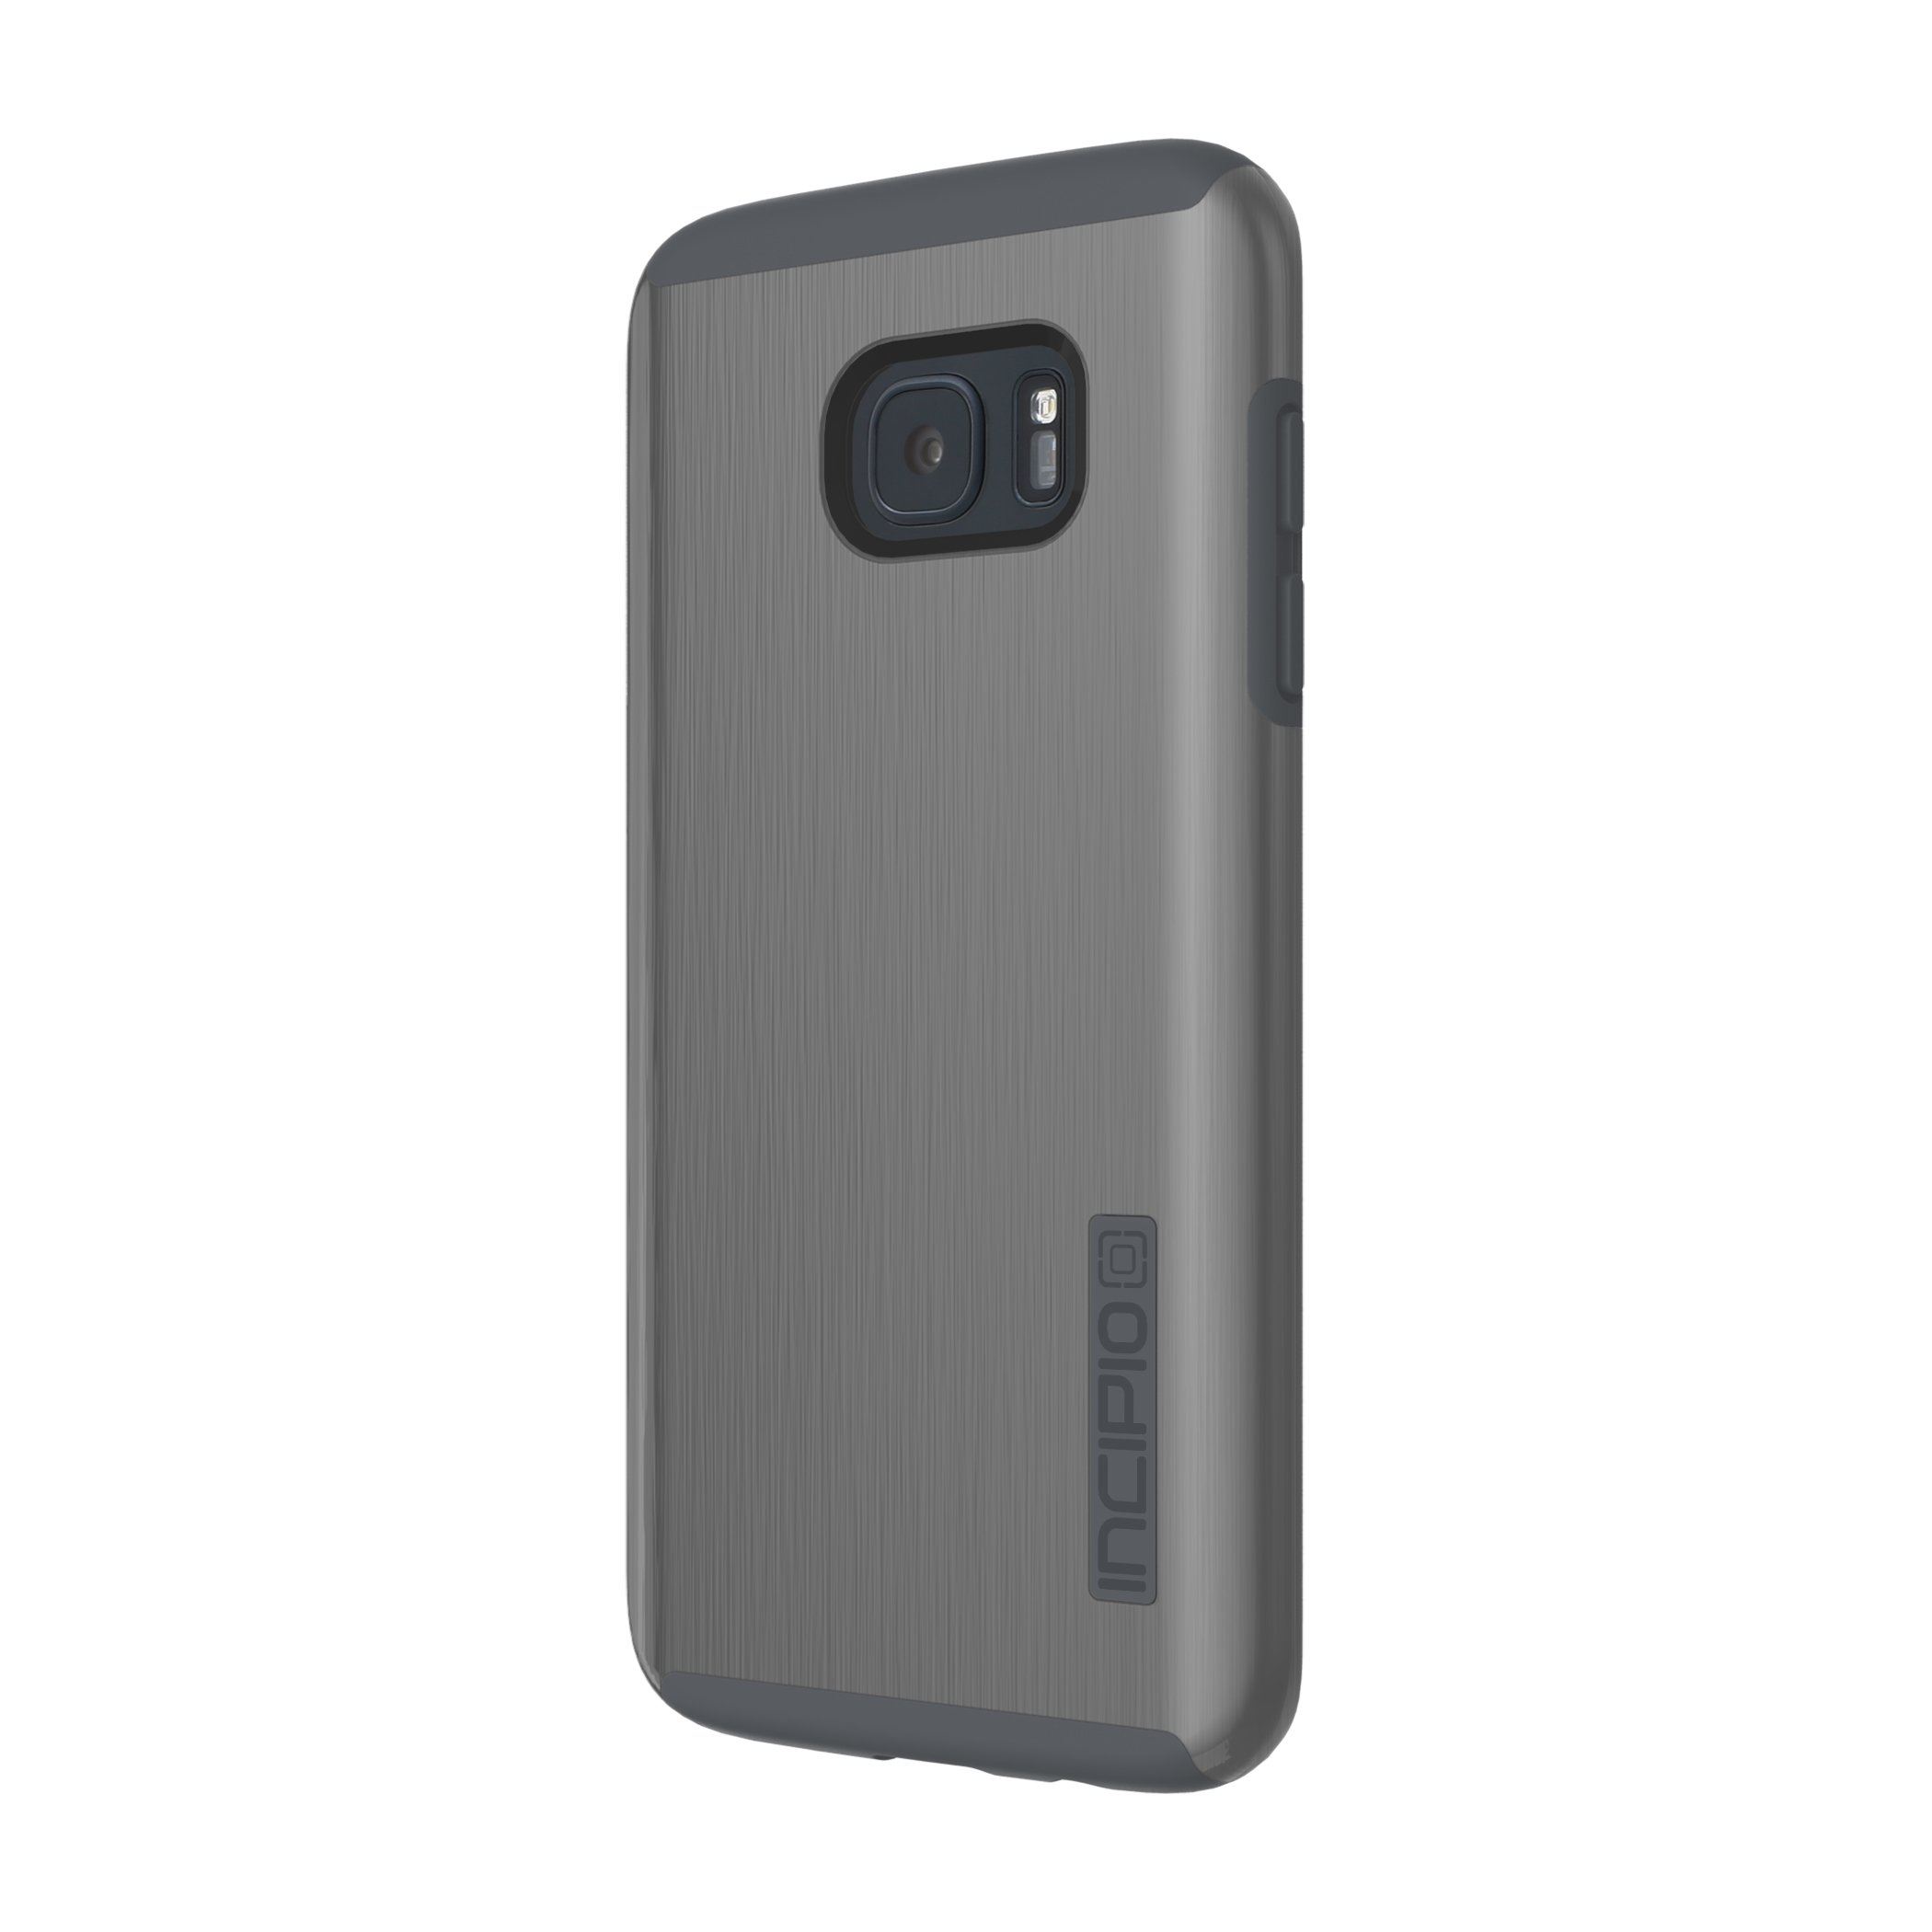 Samsung Galaxy S7 Edge case, Incipio DualPro Shine, Dual Layer Protection with Brushed Aluminum Finish Shock-Absorbing Impact-Resistant Dual-Layer Cover - Gunmetal/Gray